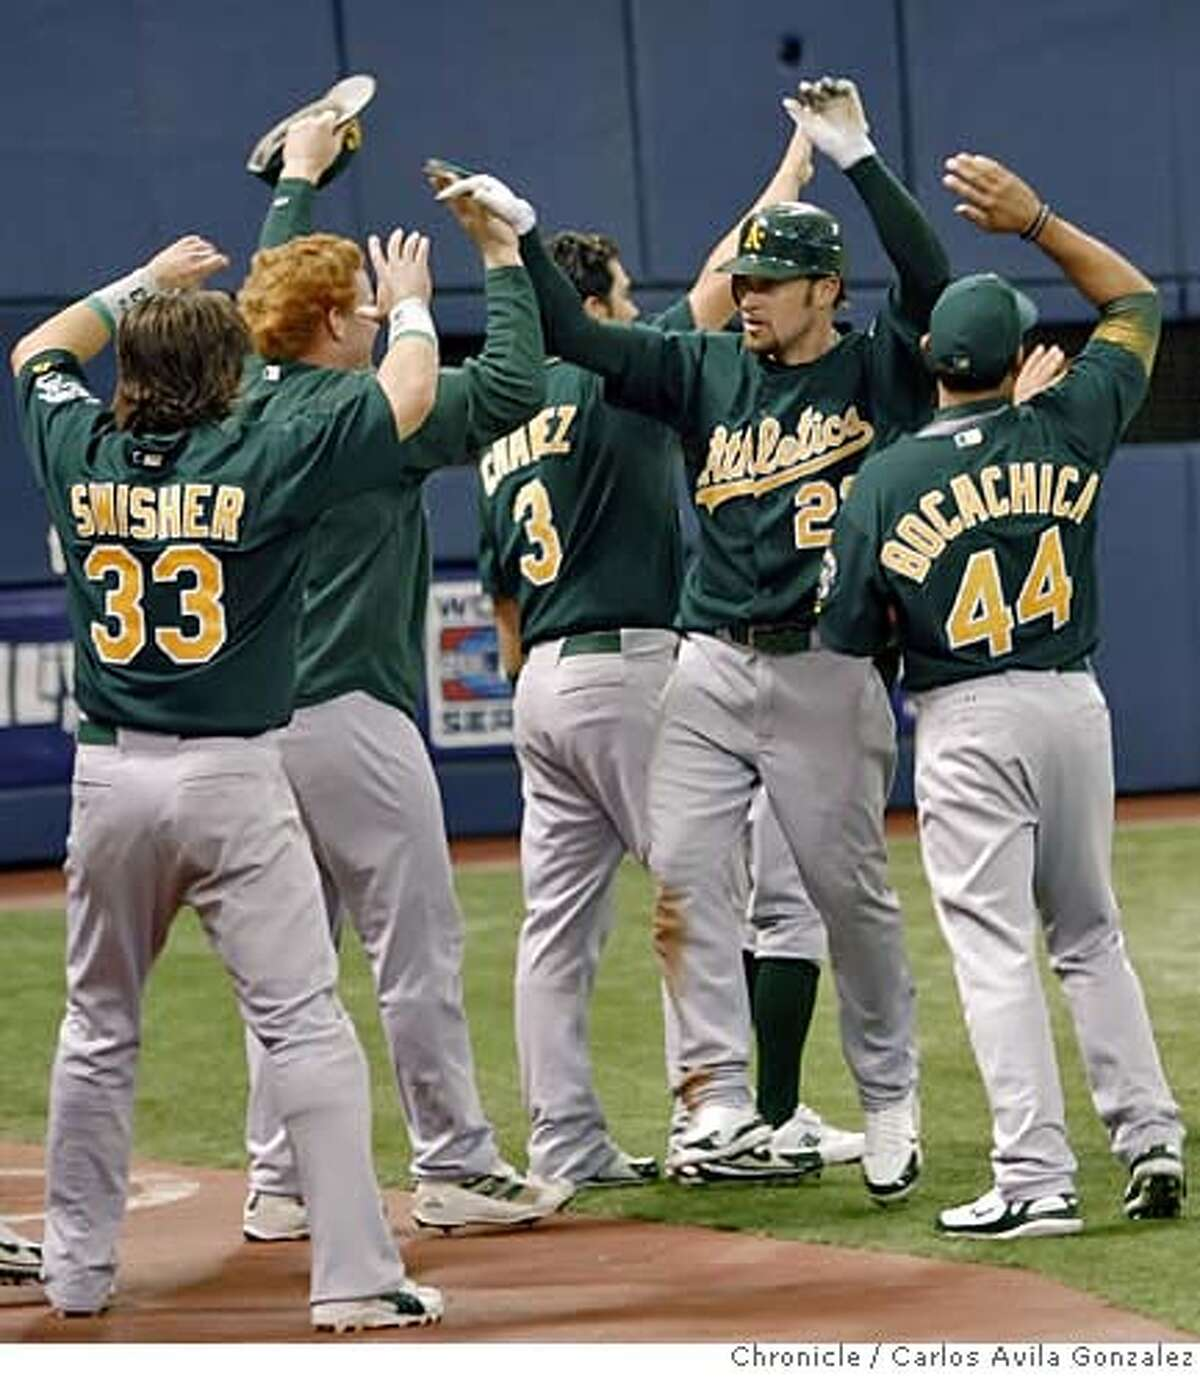 Mark Kotsay high fived by teammates after his two-run inside-the-park homerun in the top of the seventh inning to give the Athletics a 4-2 lead. The A's won 5-2 after Nick Swisher scored on a wild pitch by closer Joe Nathan. The Oakland Athletics played the Minnesota Twins in Game 2 of the American League Division Series at the Metrodome in Minneapolis, Mn., on Wednesday October 4, 2006, winning the game, 5-2. Photo by Carlos Avila Gonzalez/The San Francisco Chronicle Photo taken on 10/4/06, in Minneapolis, Mn, USA **All names cq (source)